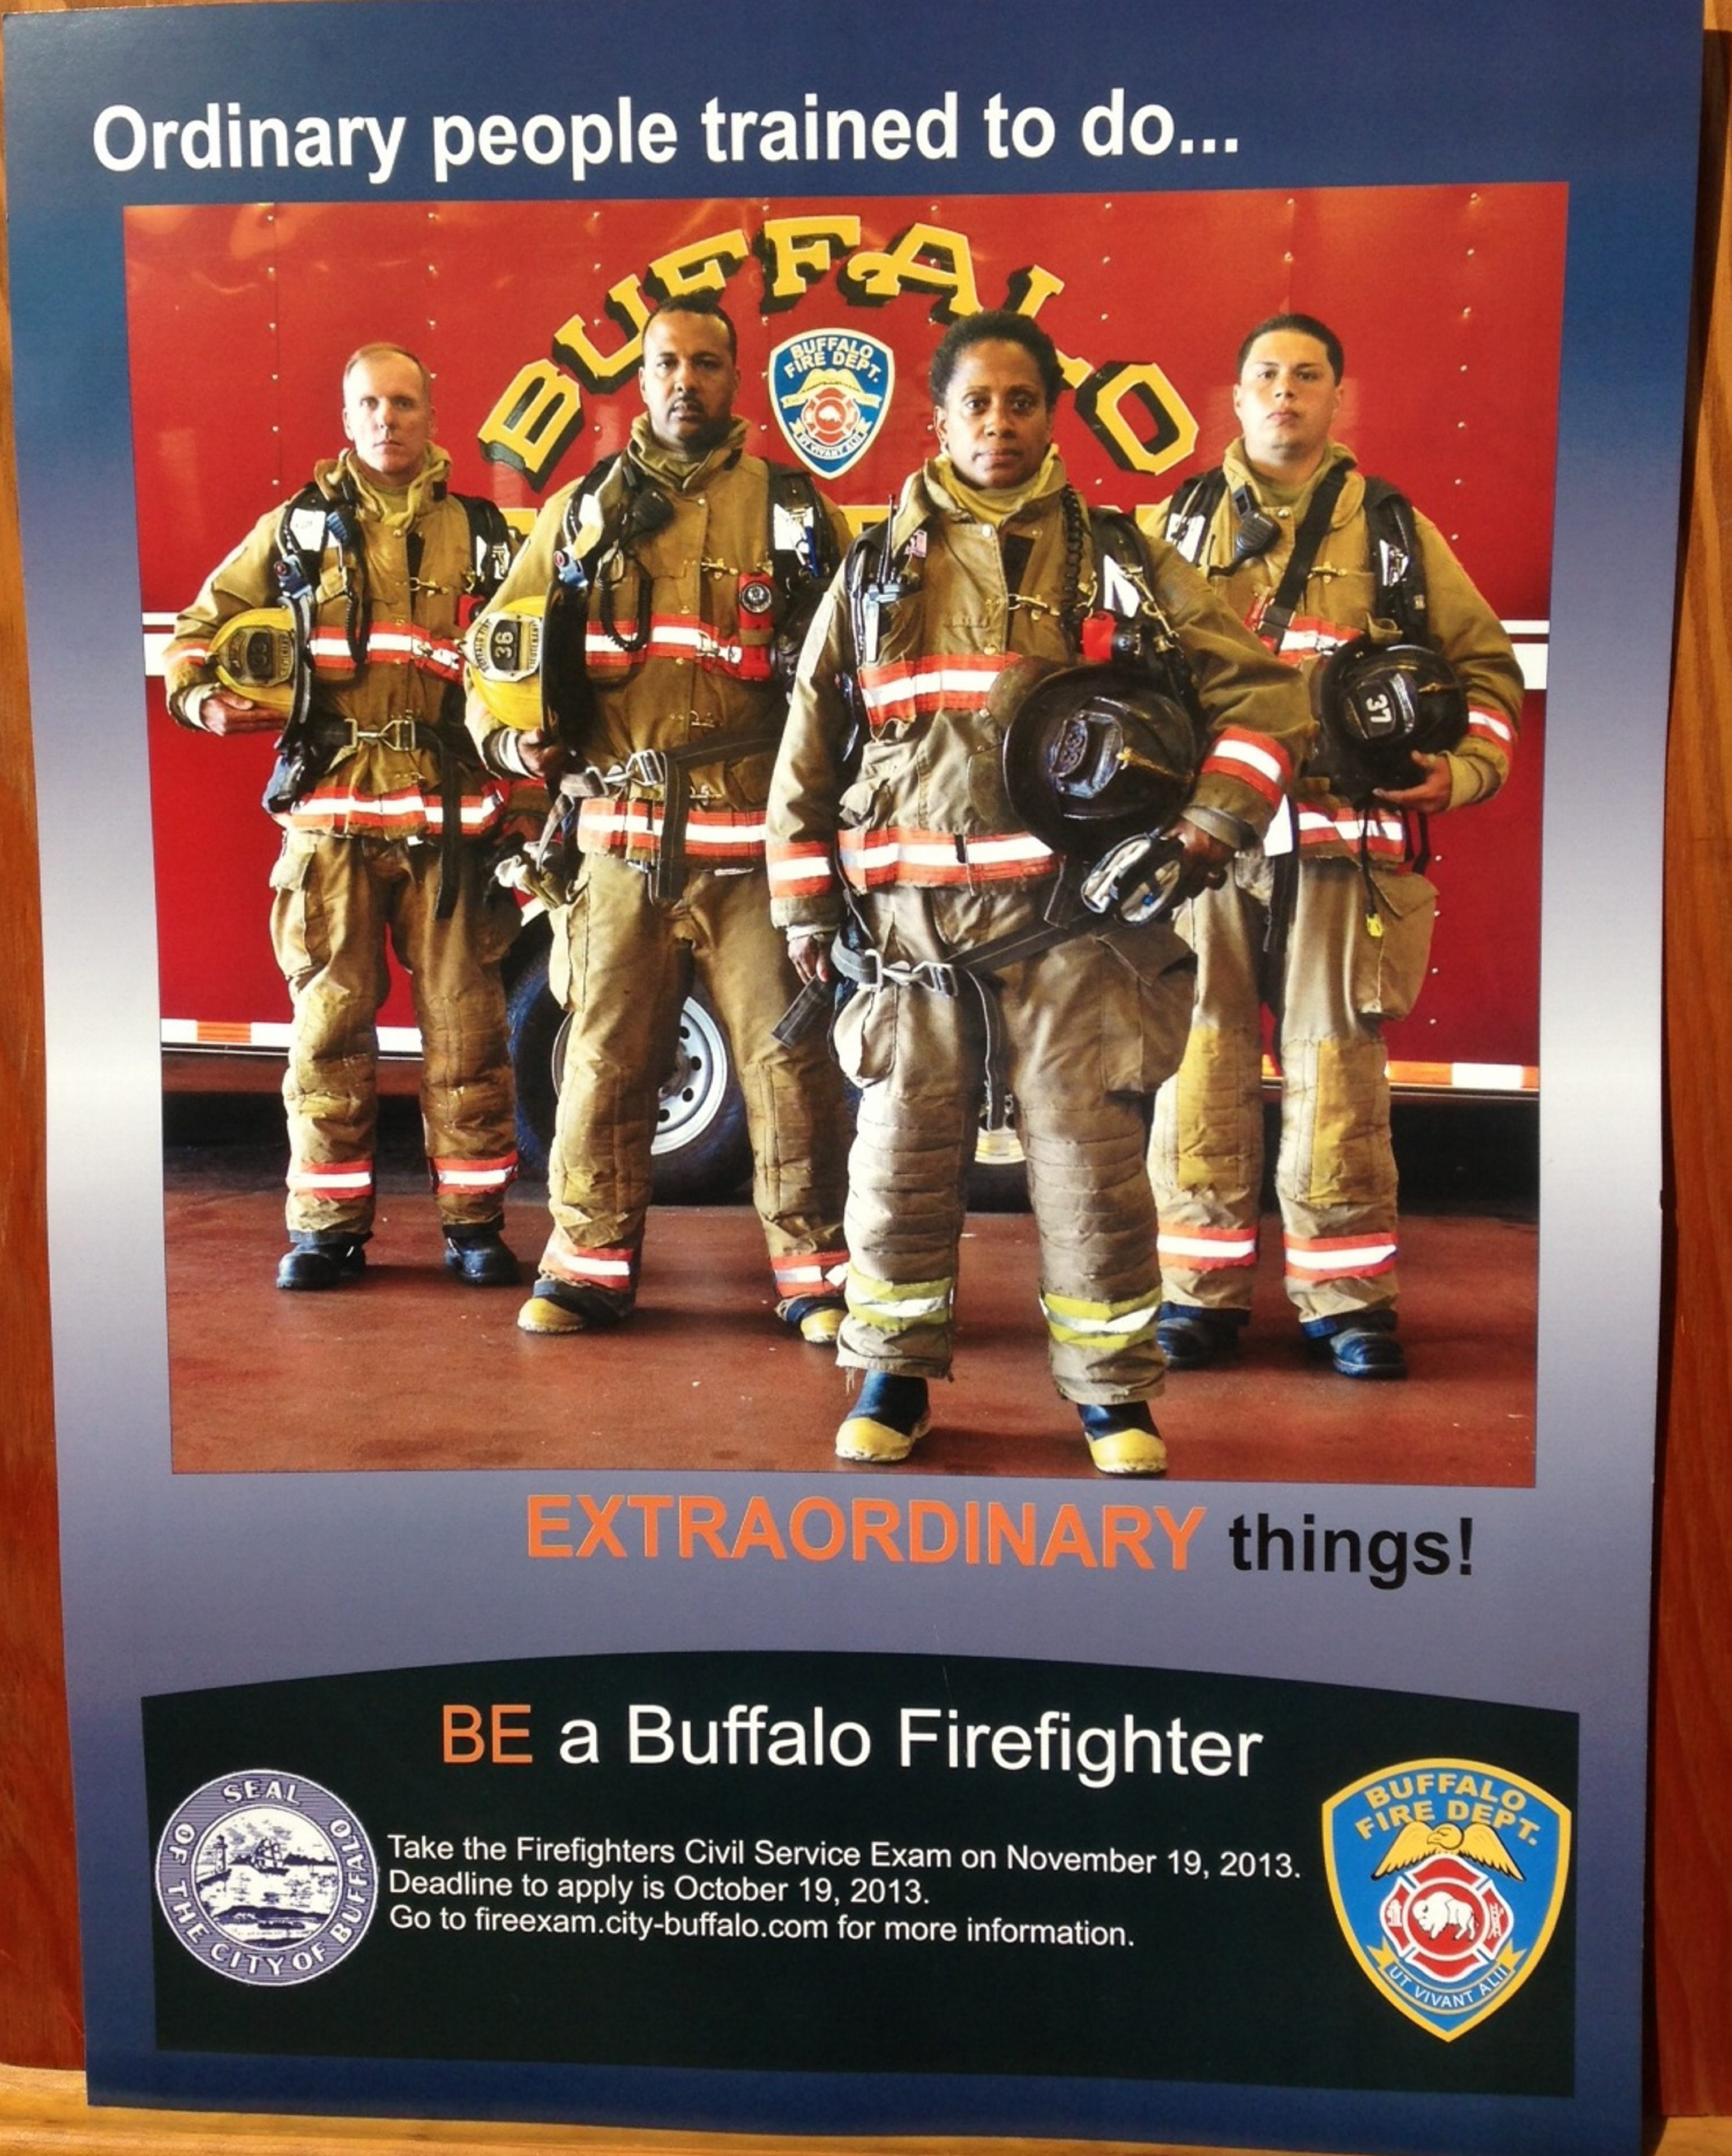 The Buffalo Fire Department has launched a citywide recruitment campaign.